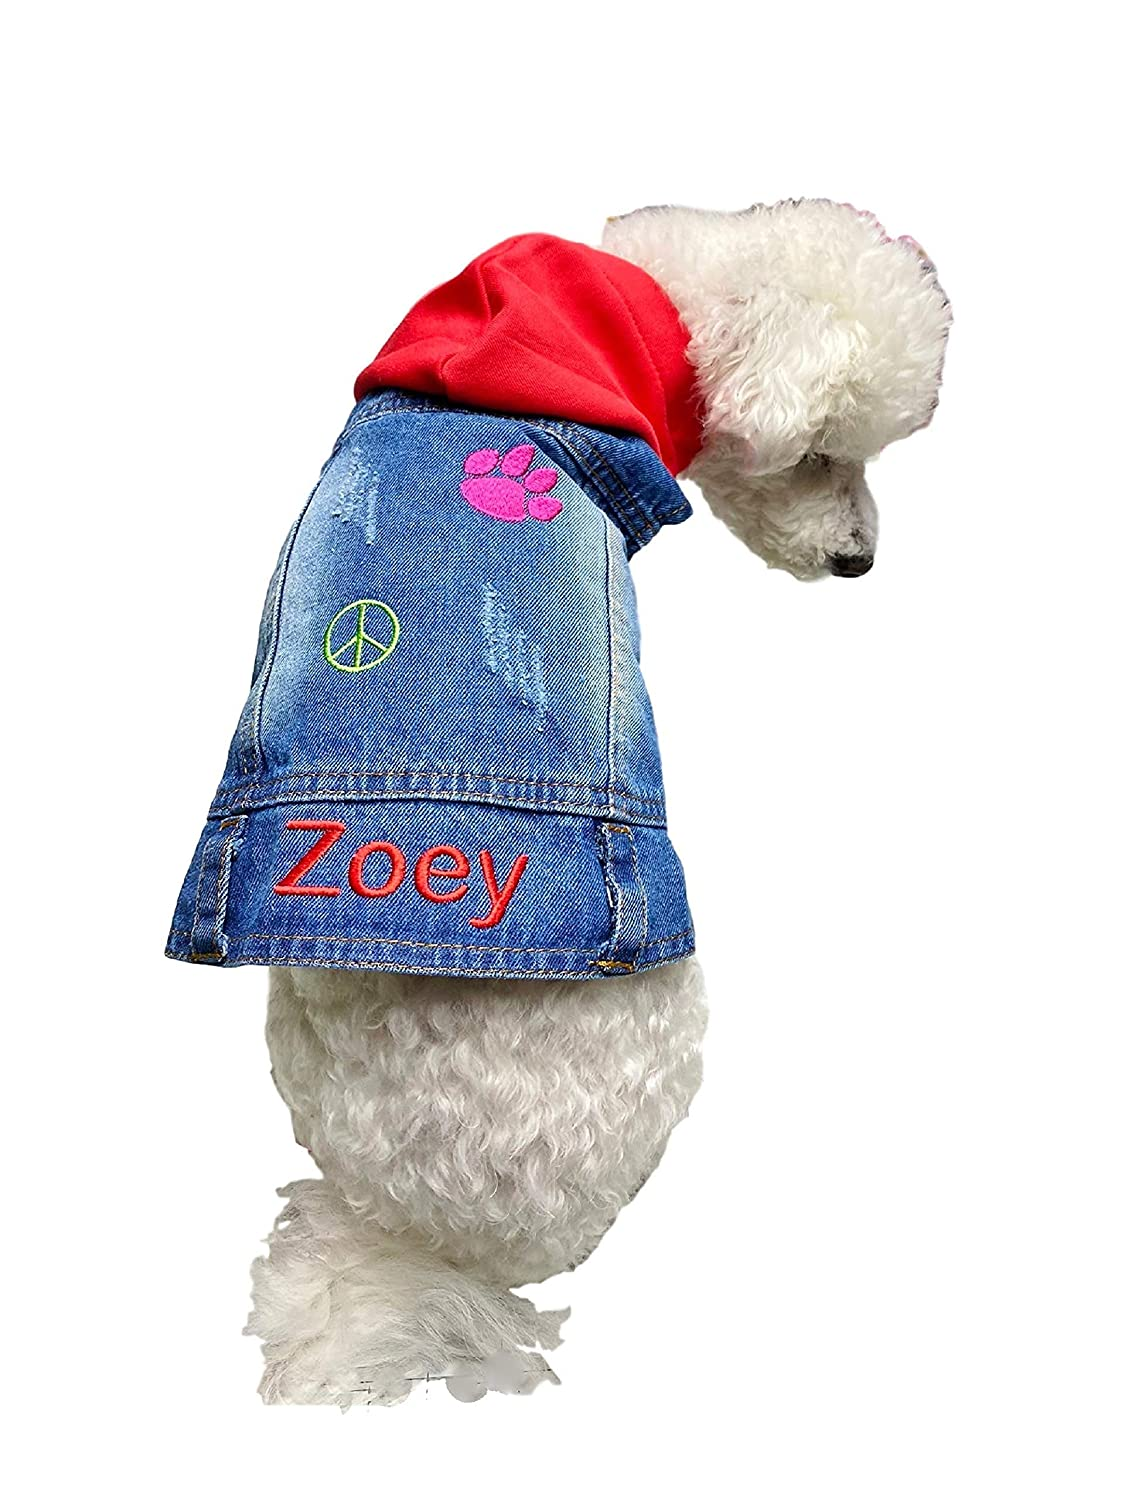 security Personalized DENIM Jeans Jacket DOG Outfit Pea HOODIE Name with Max 75% OFF